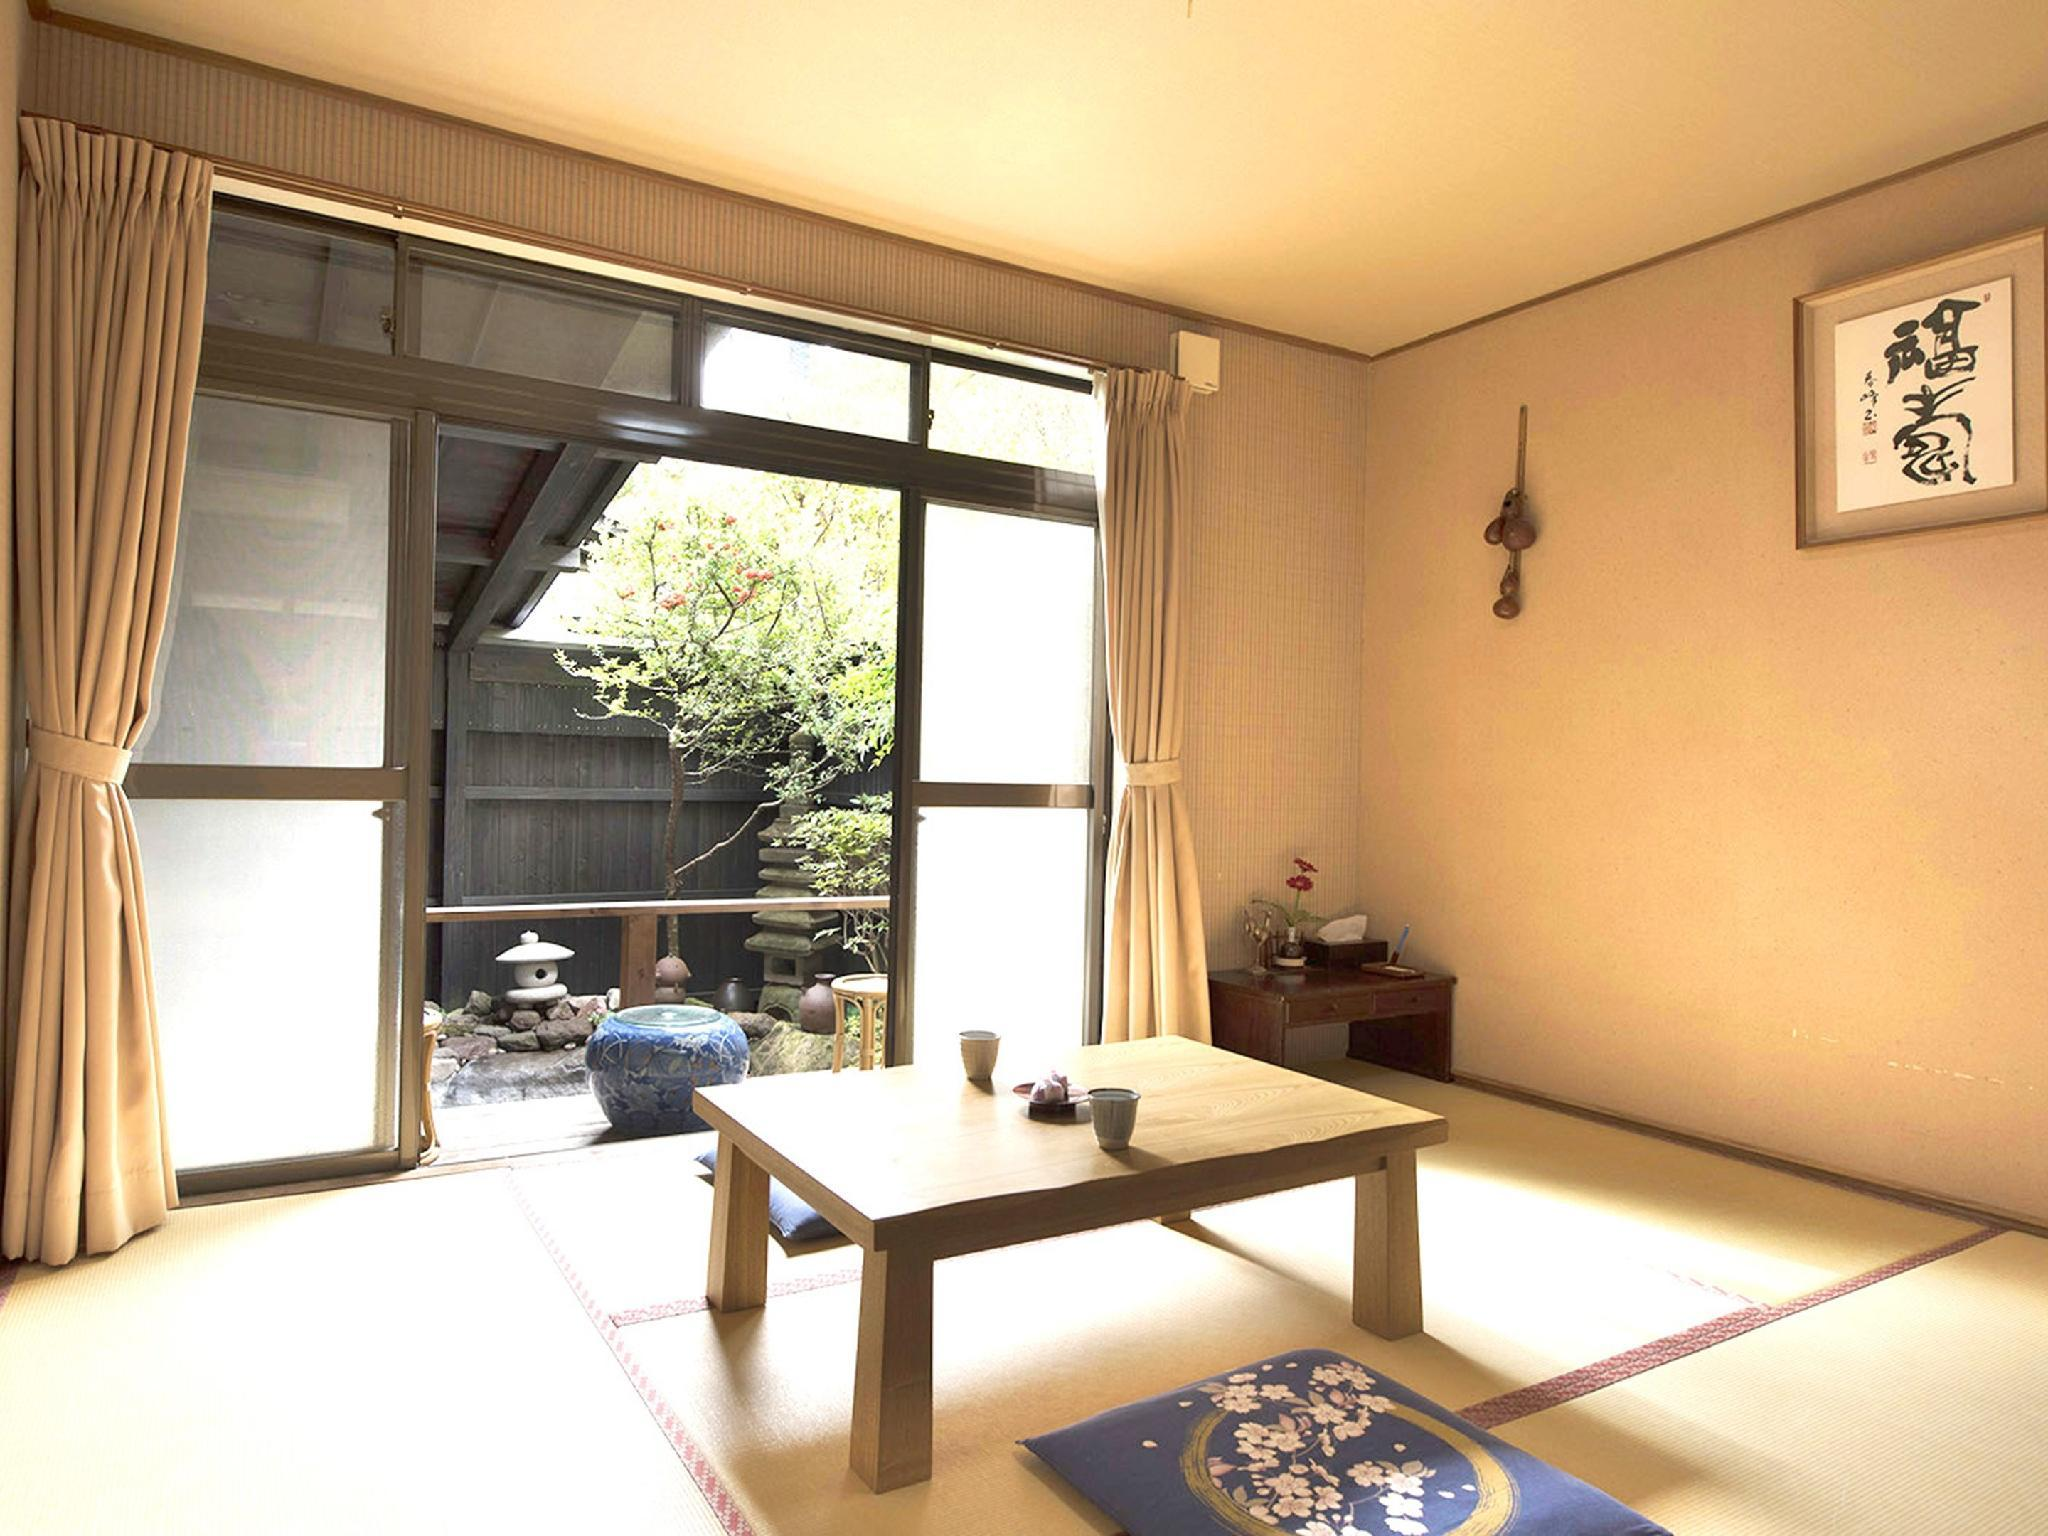 独立房(和式房+源泉放流式露天风吕) (Detached Japanese-style Room with Open-air Hot Spring Bath)